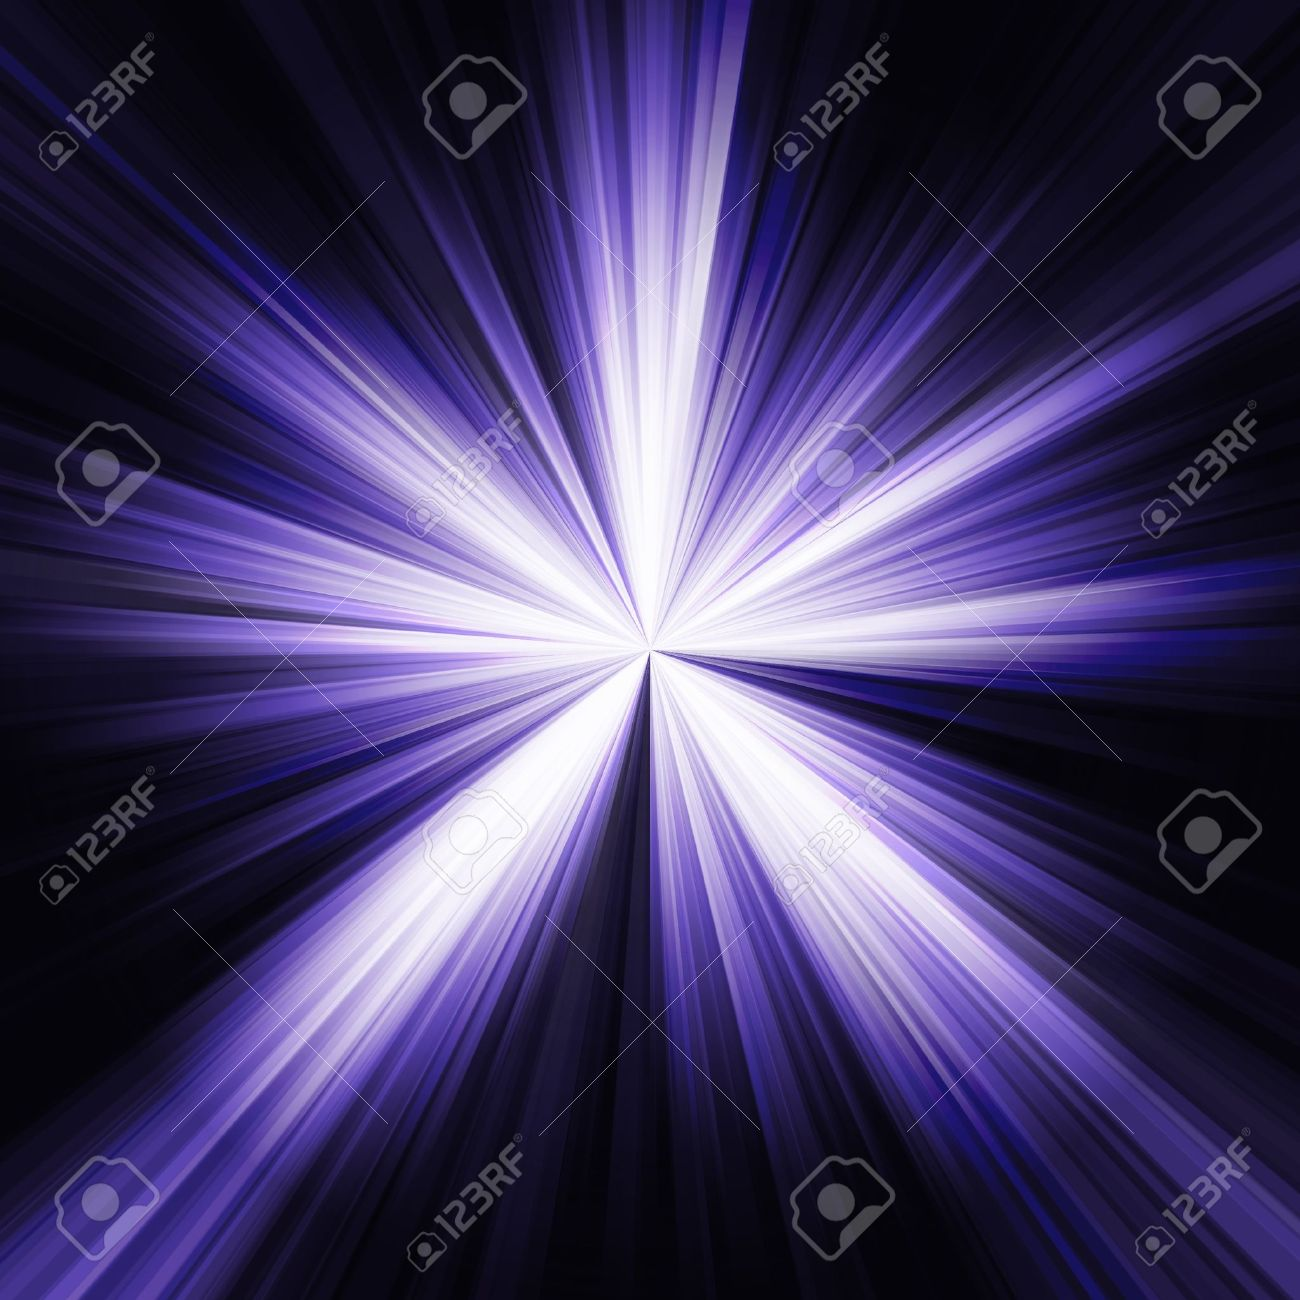 Bright Blue Flash On A Black Background Stock Photo Picture And Royalty Free Image Image 9129703